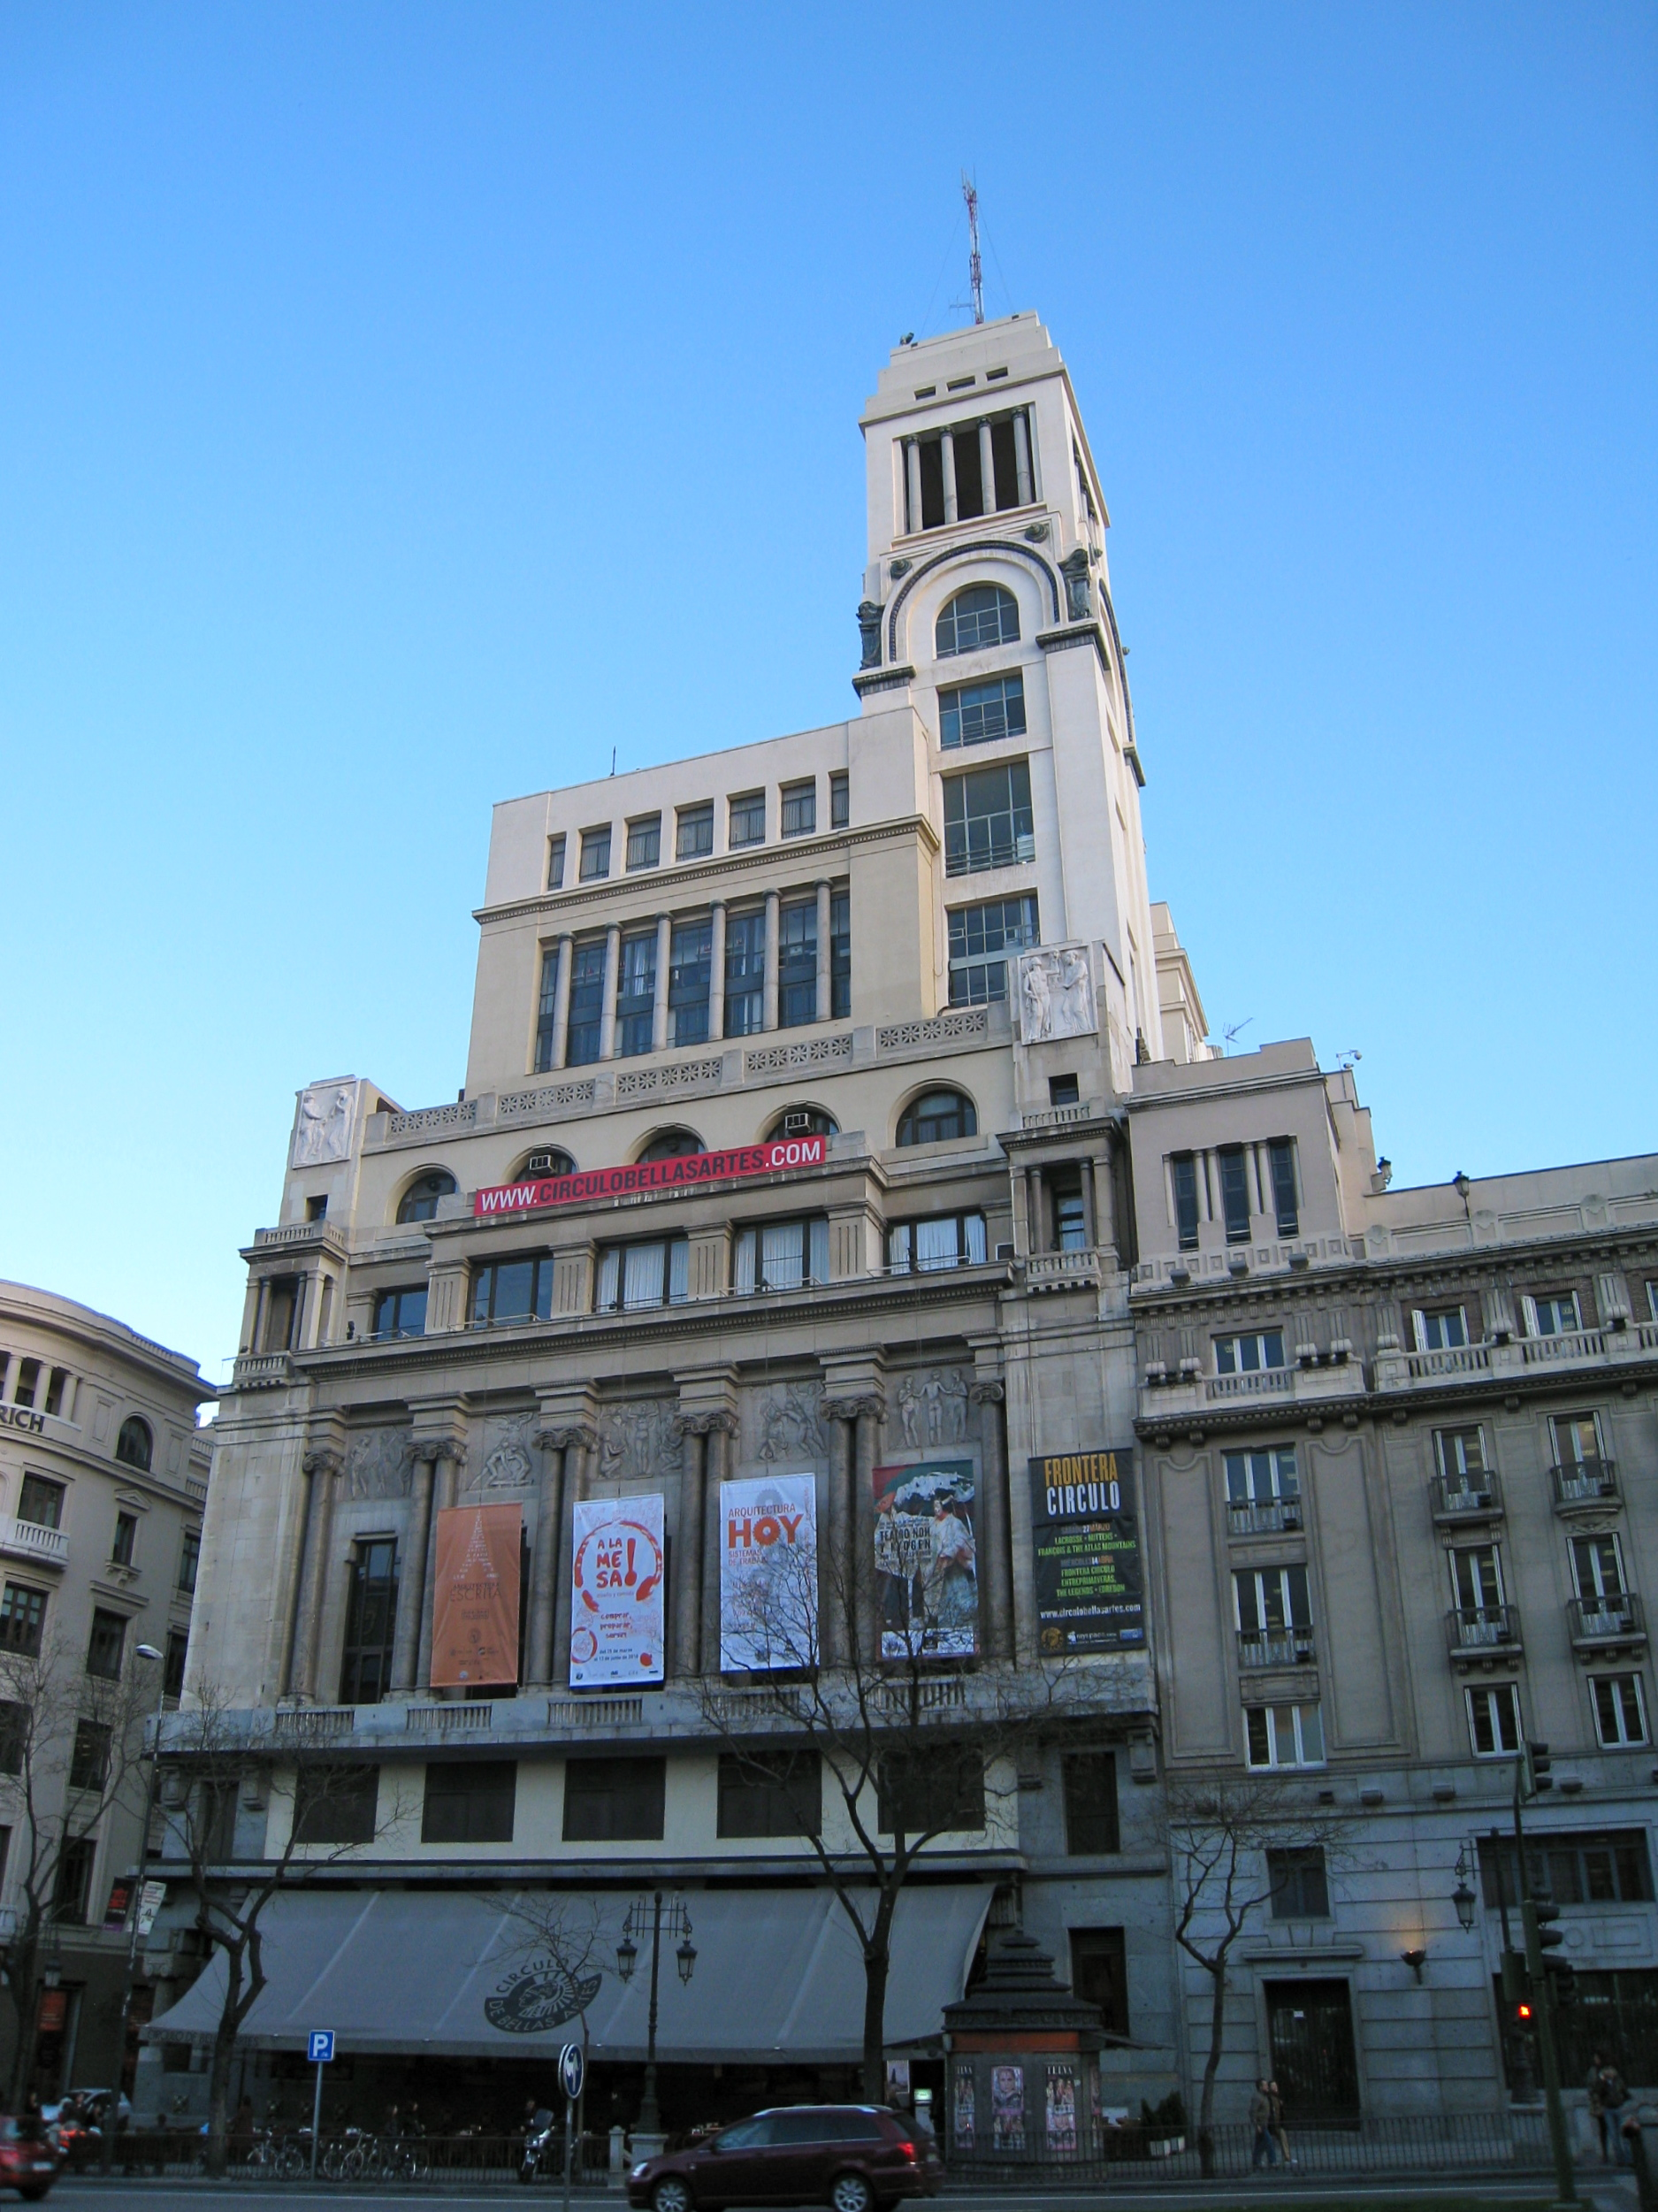 Madrid. Circulo de Bellas Artes